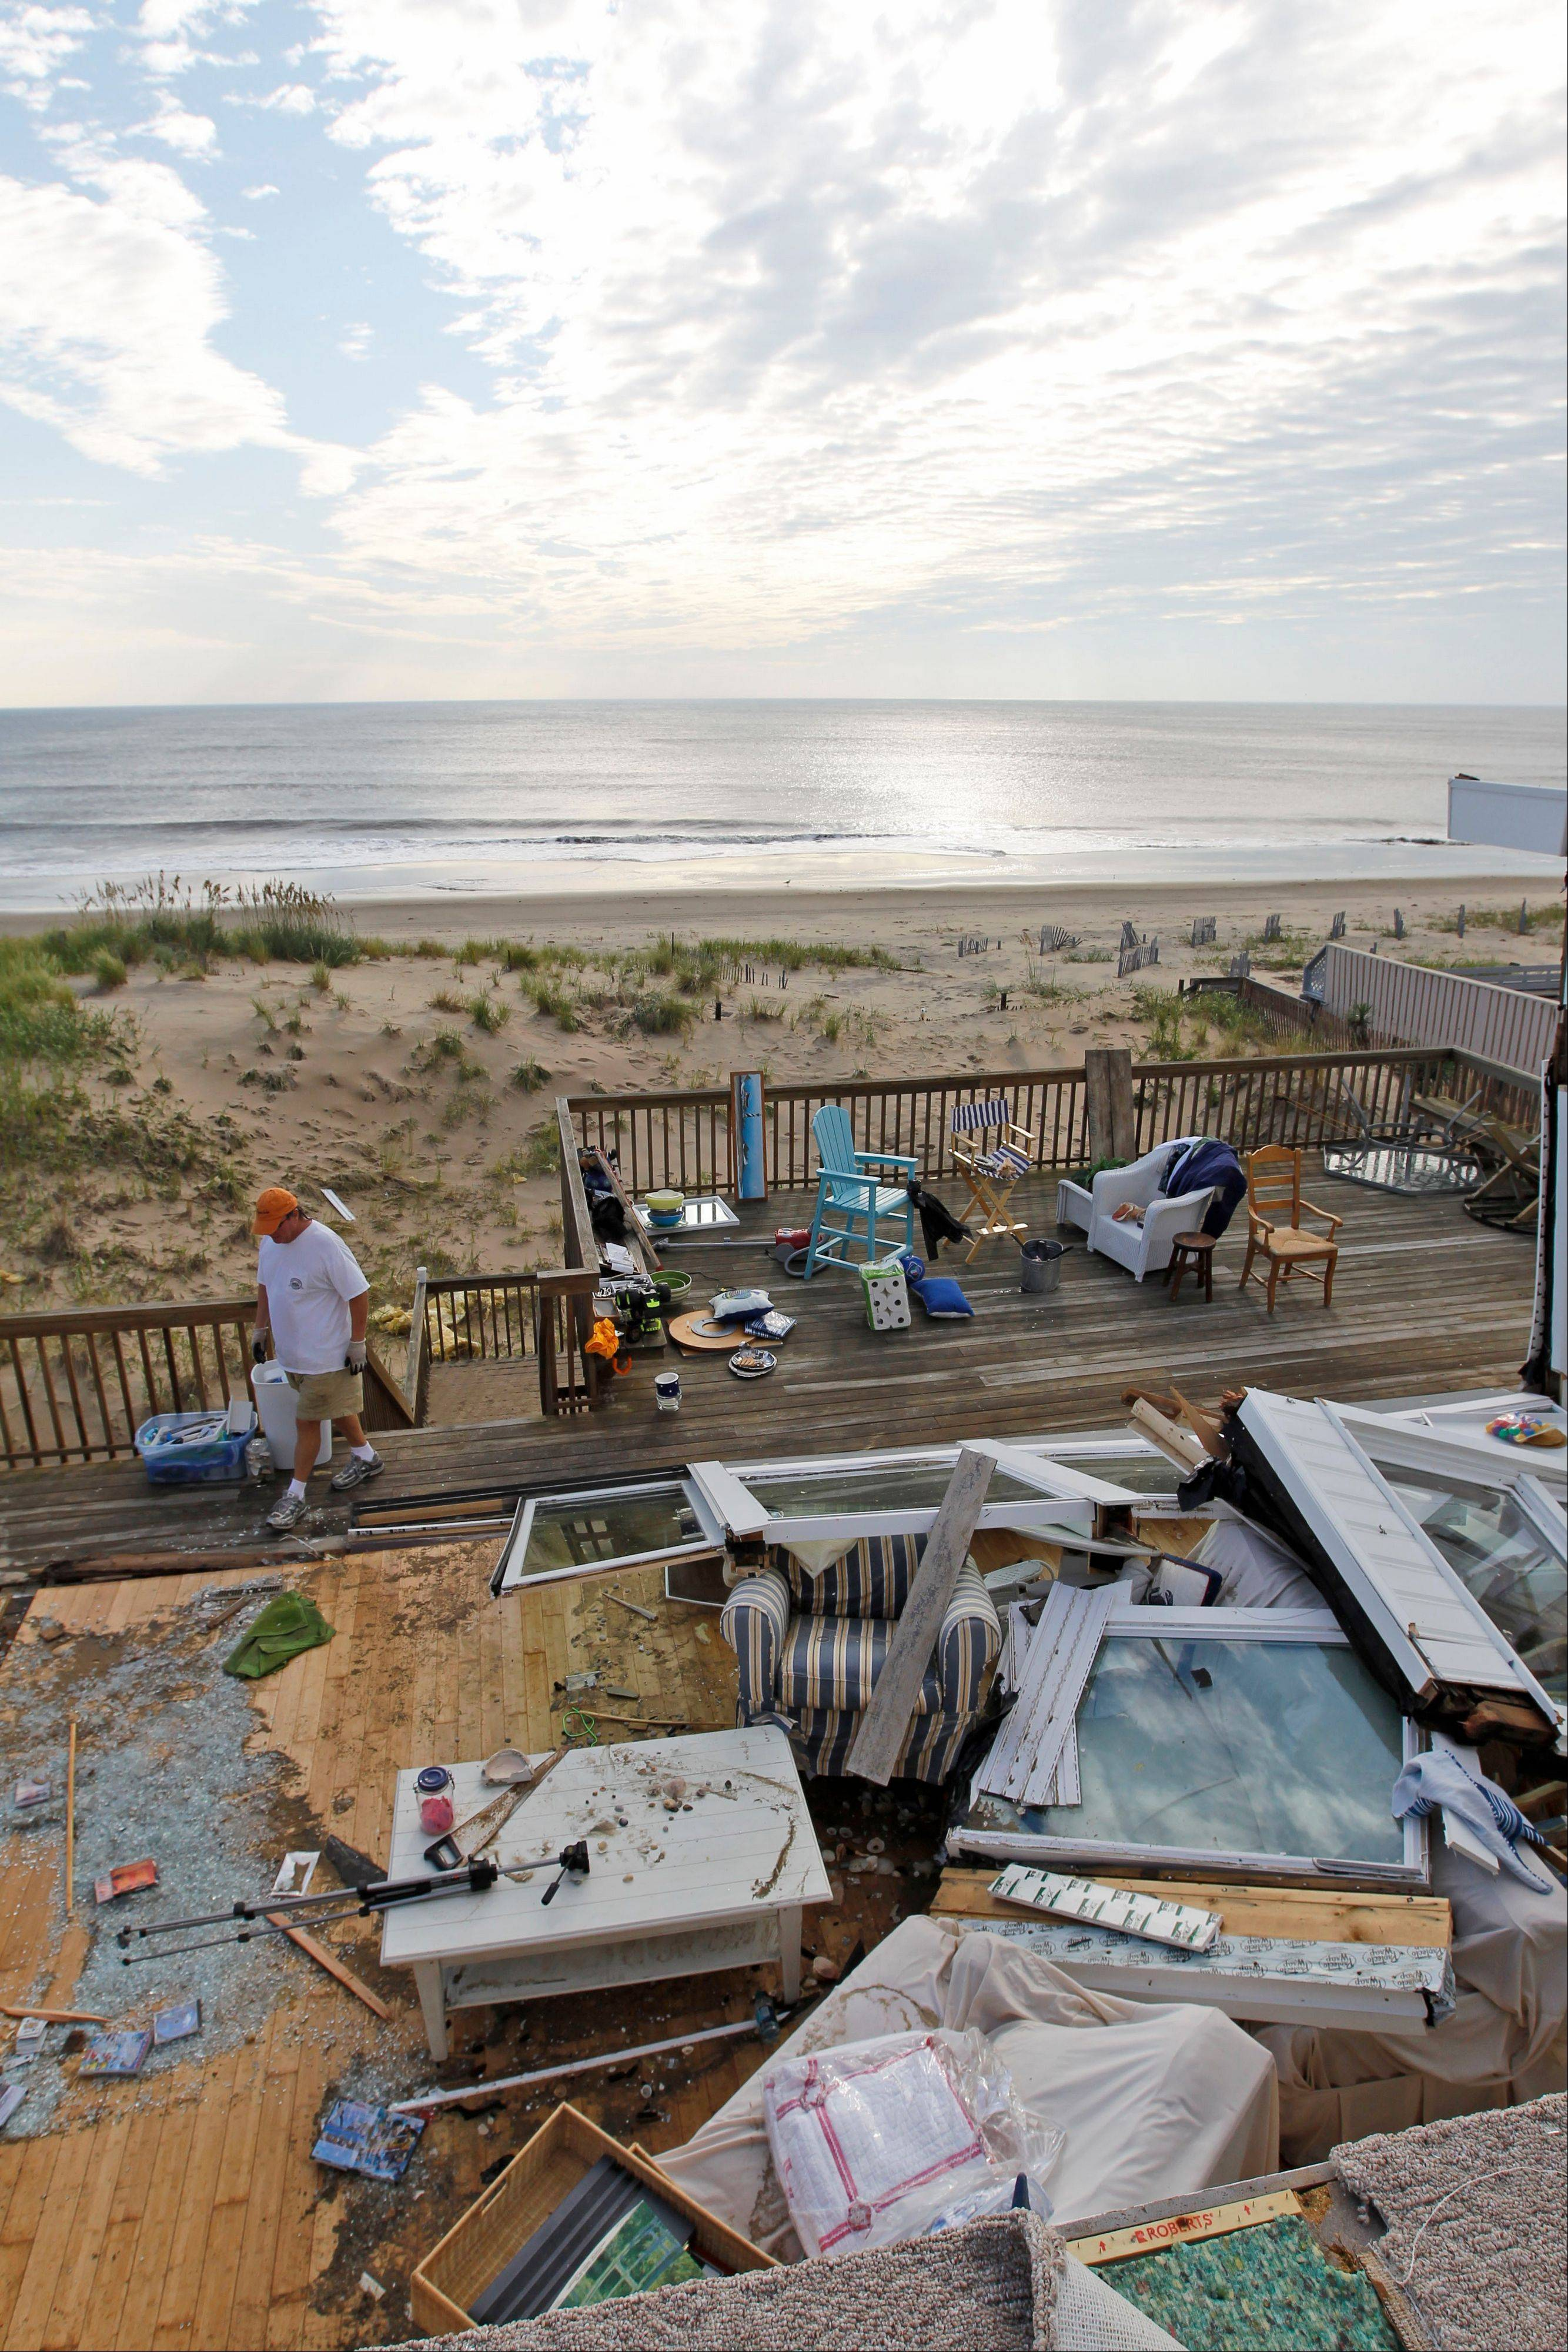 Casey and Denise Robinson clear out their destroyed beach home in the Sandbridge area of Virginia Beach, Va., Sunday, Aug. 28, 2011, the day after Hurricane Irene moved through. Officials speculate that a tornado swept through the area.